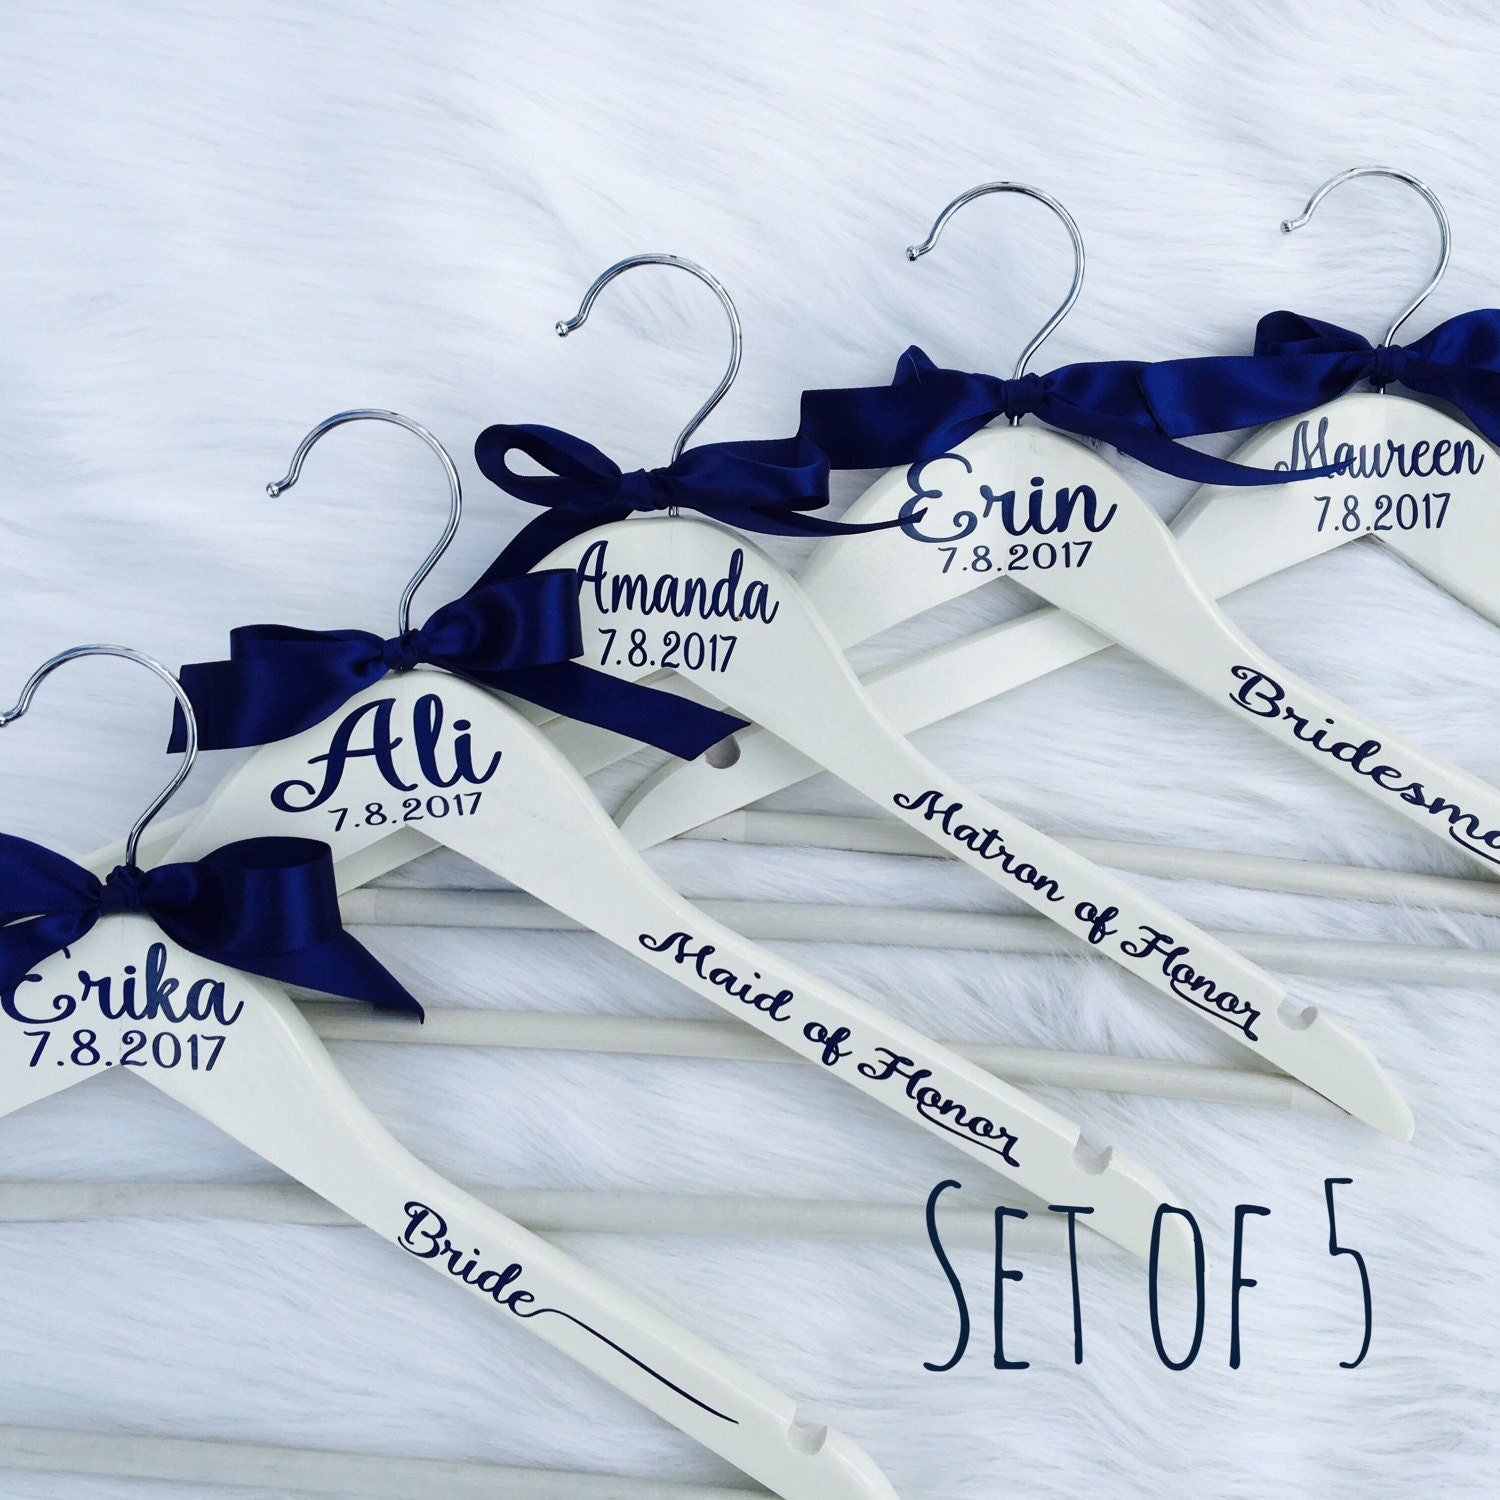 Amazing Wedding Dress Hangers With Name Ensign - All Wedding Dresses ...